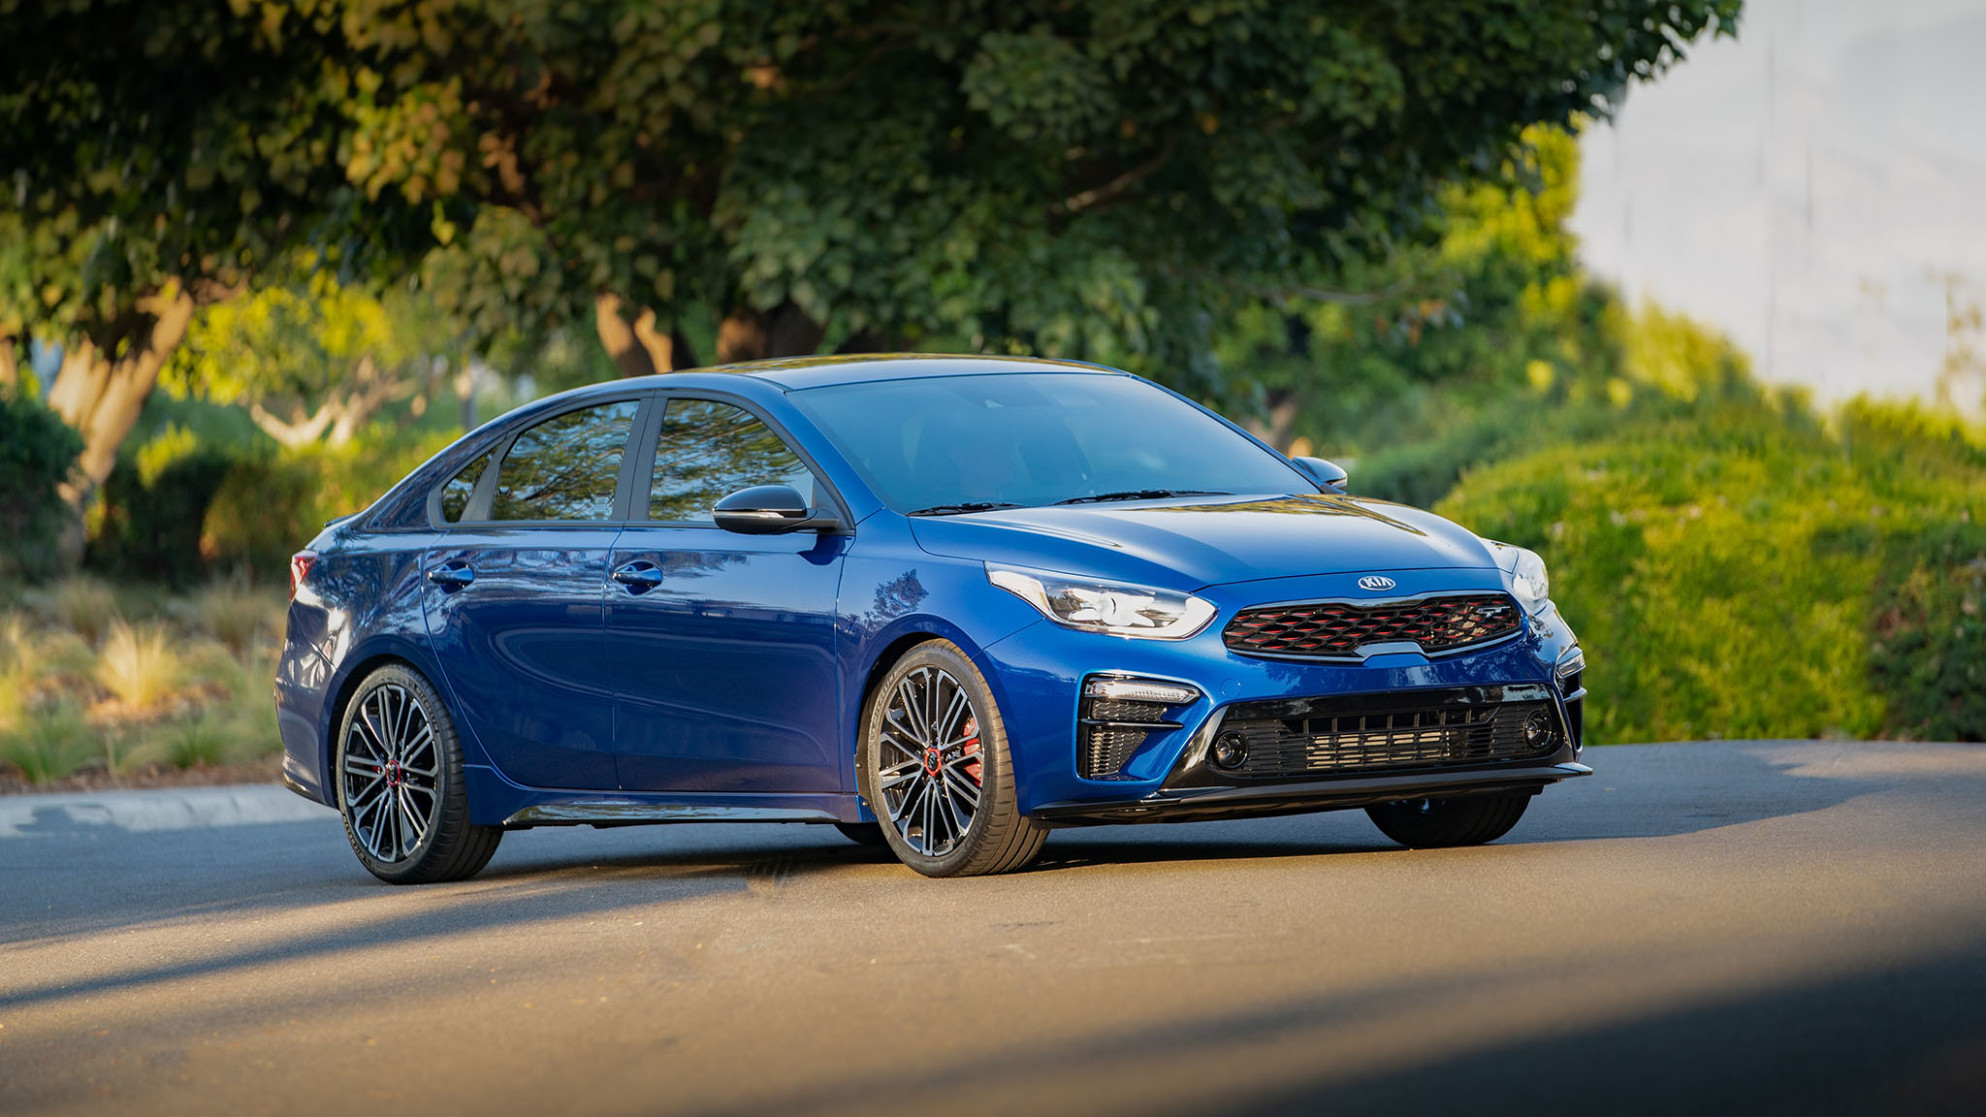 7 Kia Forte Buyer's Guide: Reviews, Specs, Comparisons